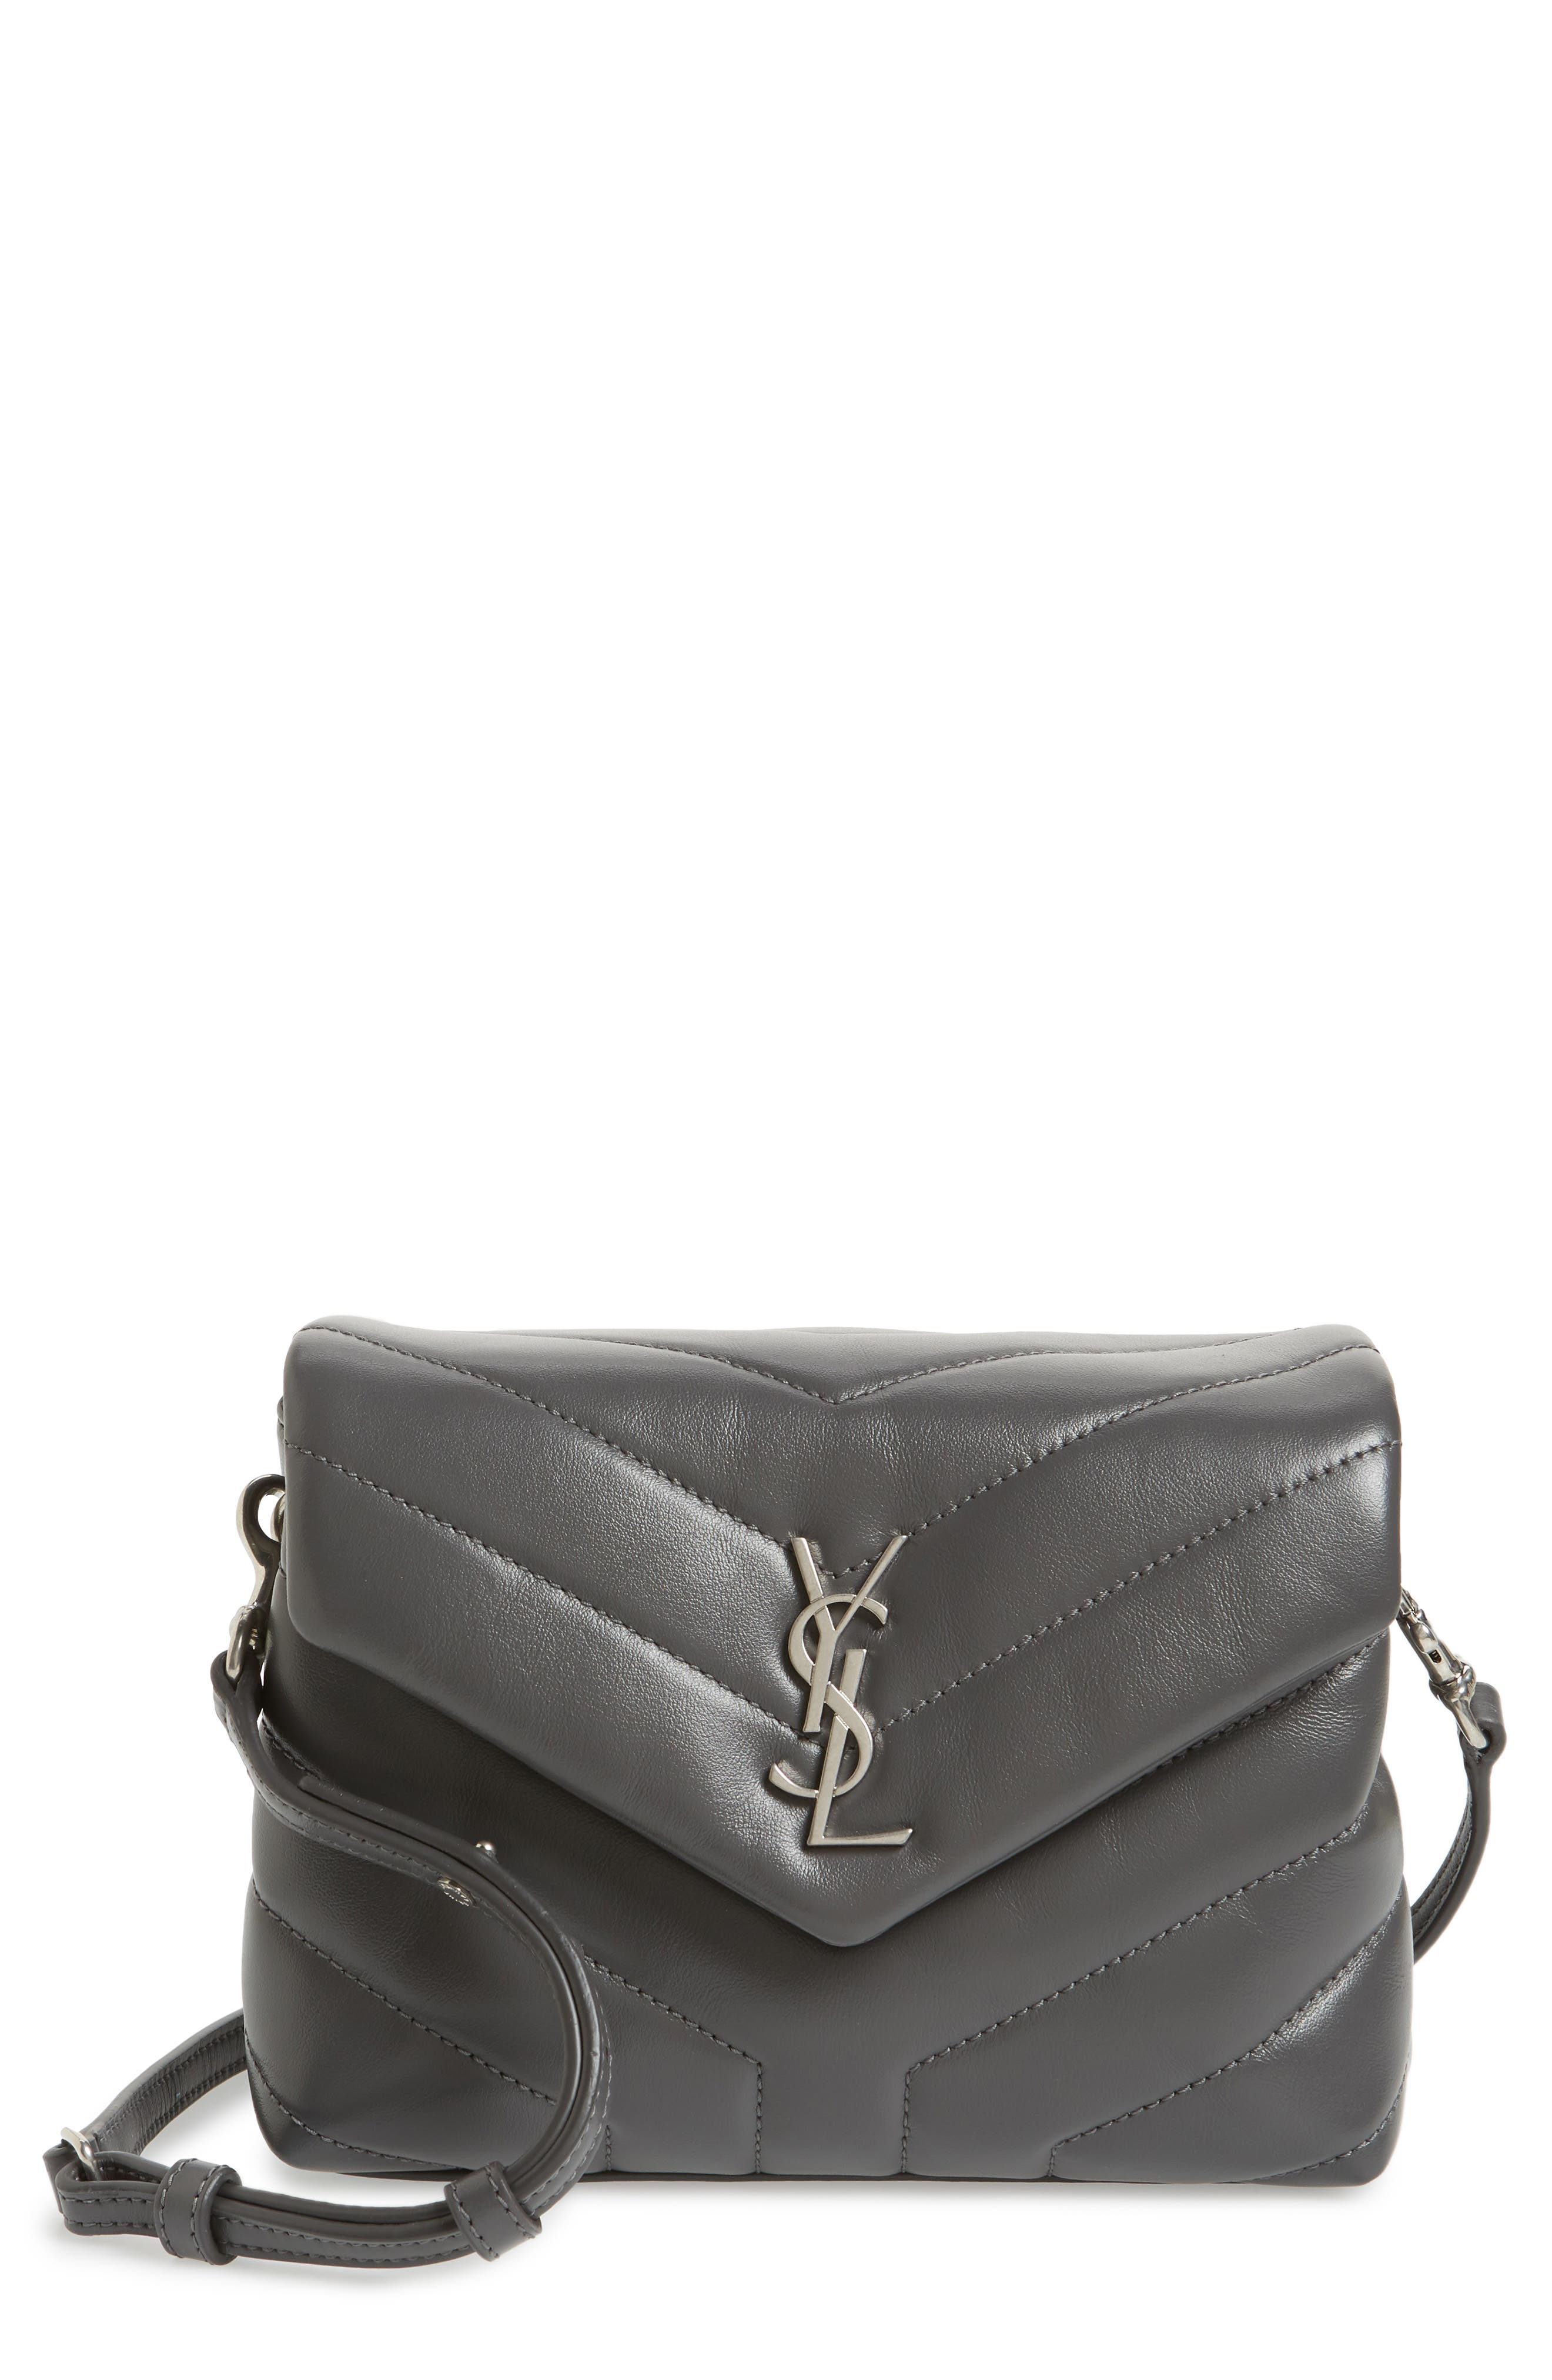 Toy Loulou Calfskin Leather Crossbody Bag,                             Main thumbnail 1, color,                             STORM